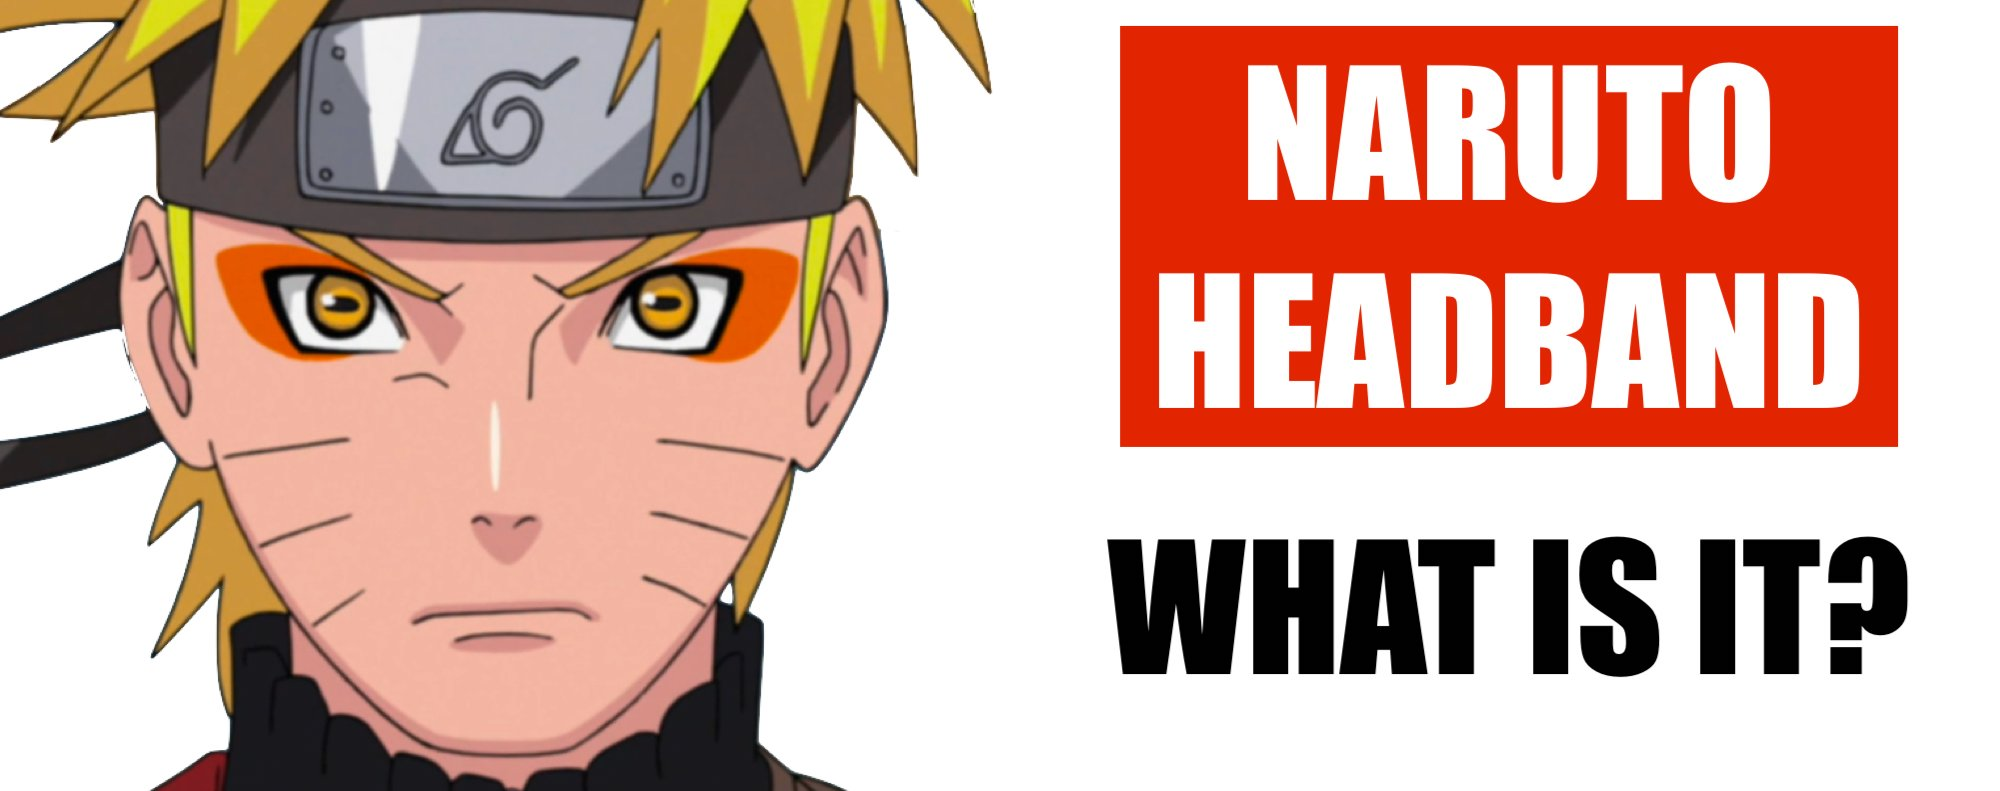 What is a Naruto Headband